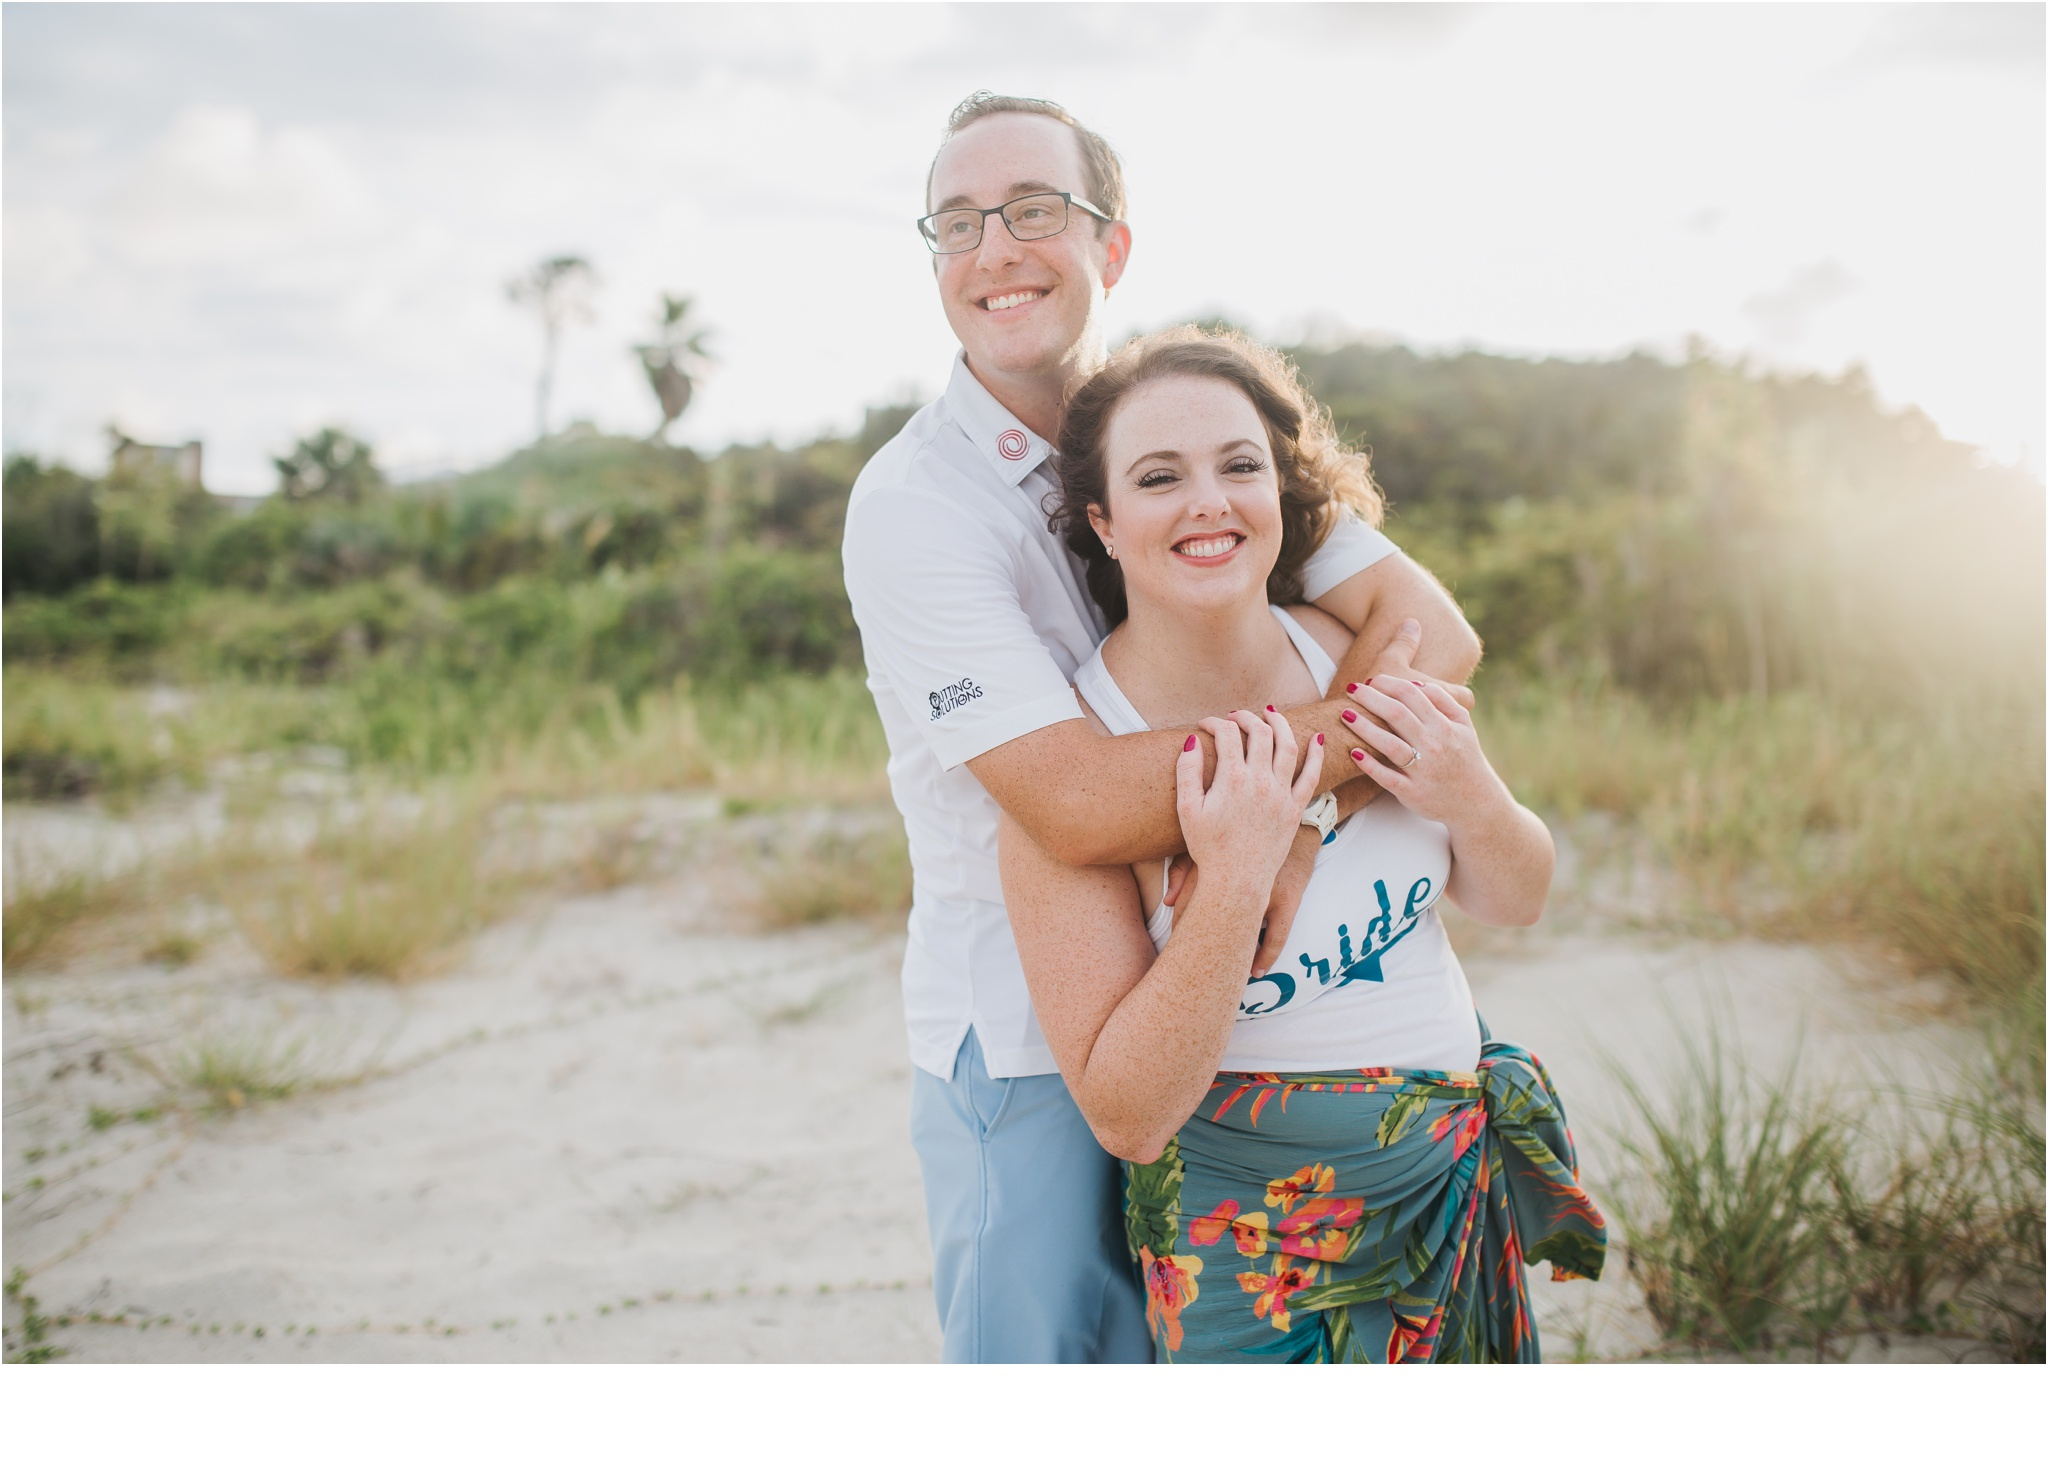 Rainey_Gregg_Photography_St._Simons_Island_Georgia_California_Wedding_Portrait_Photography_1463.jpg